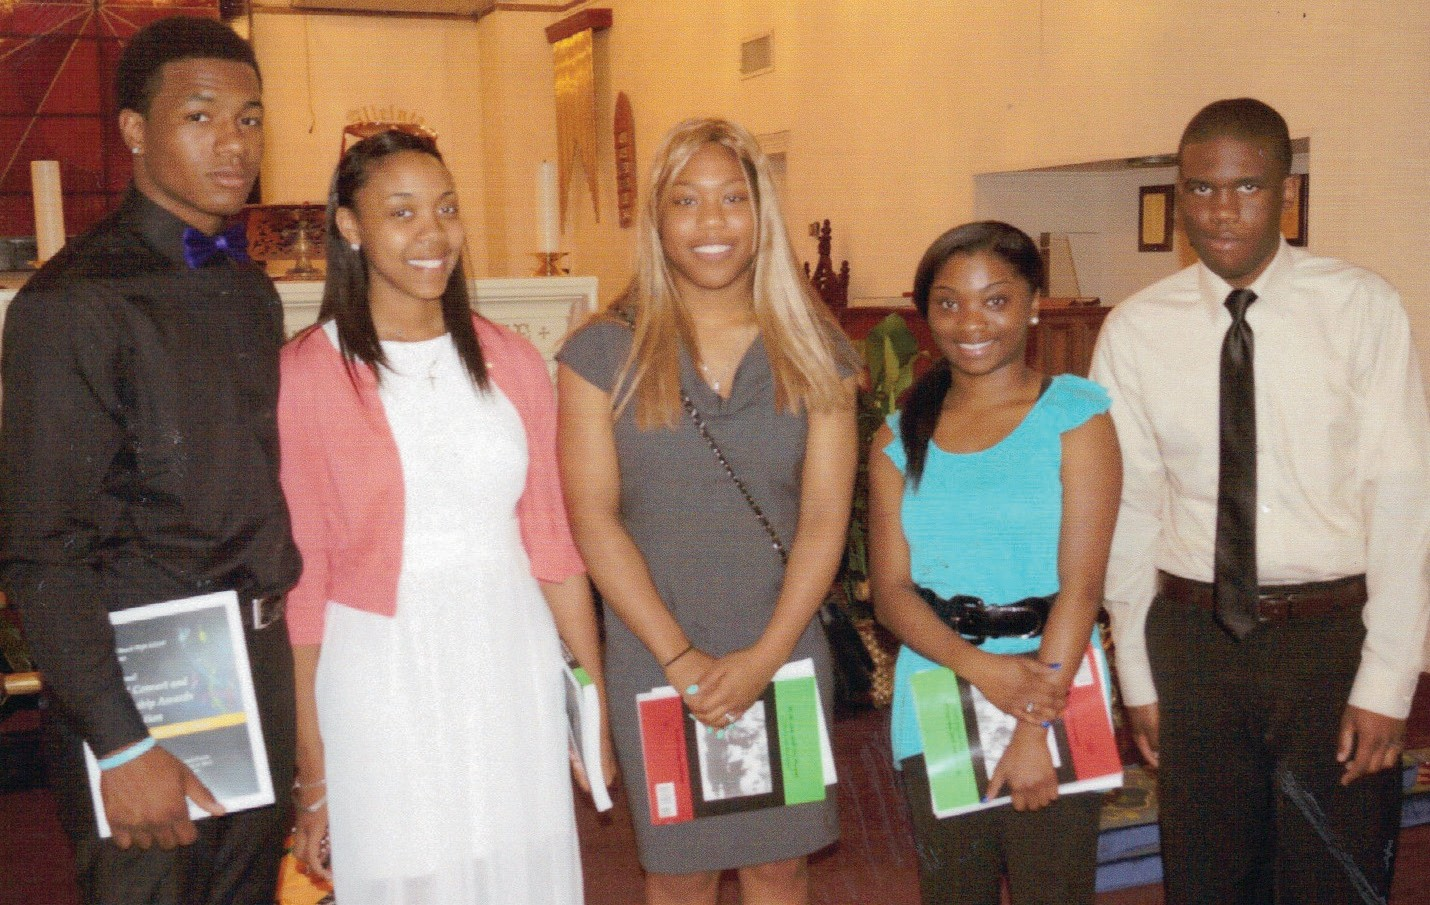 (Above) The 2014 A.E. Beach Class of 1962 Scholarship Recipients